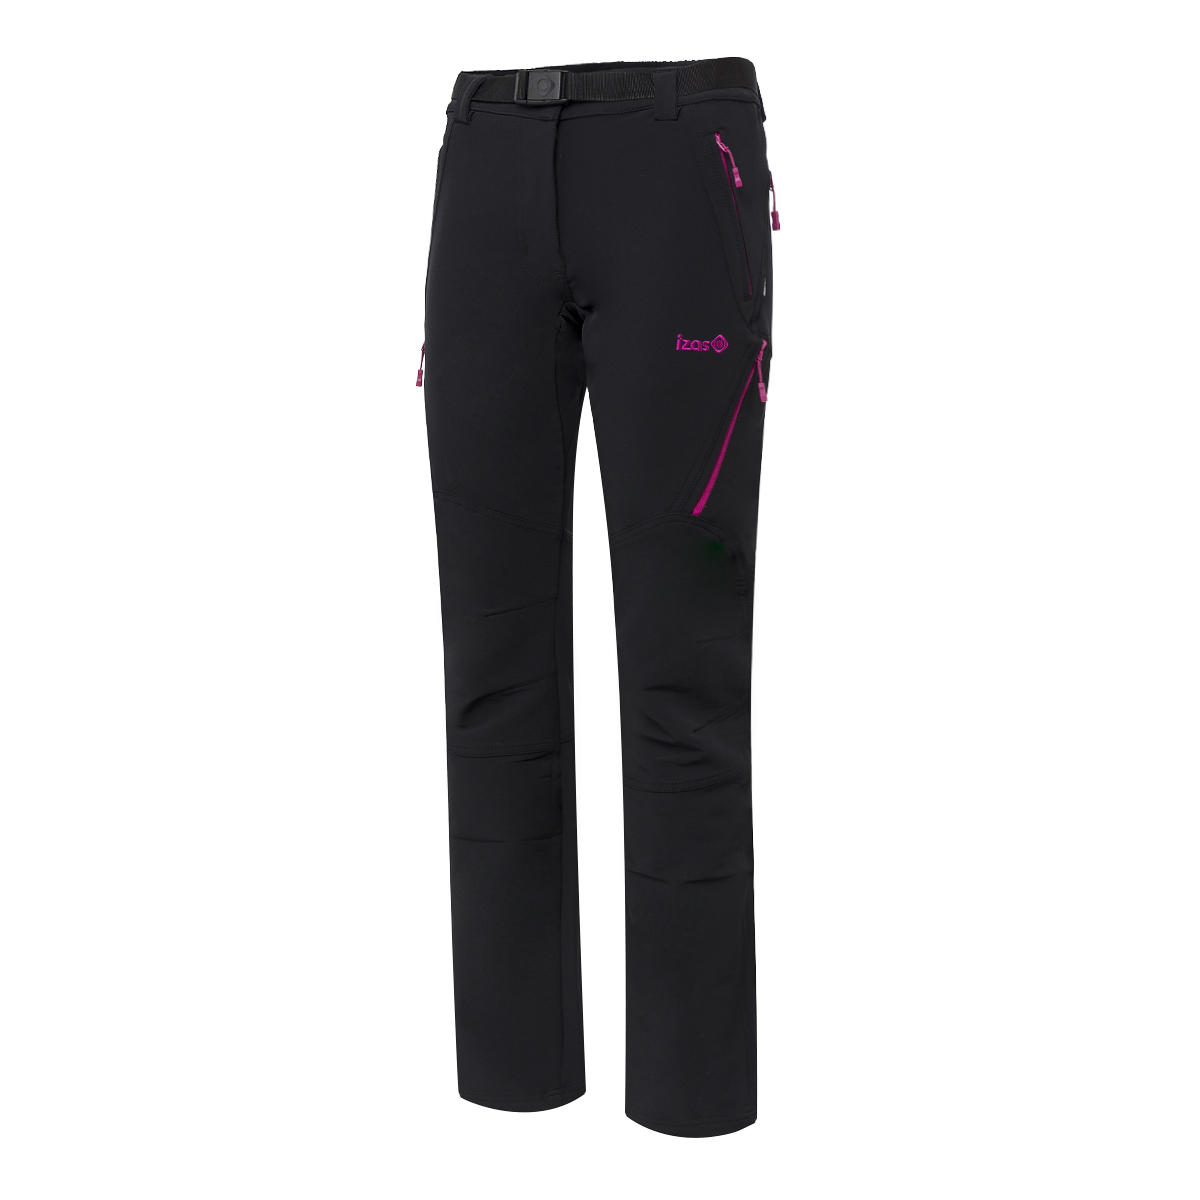 VALLUNA-BLACK-FUXIA-1